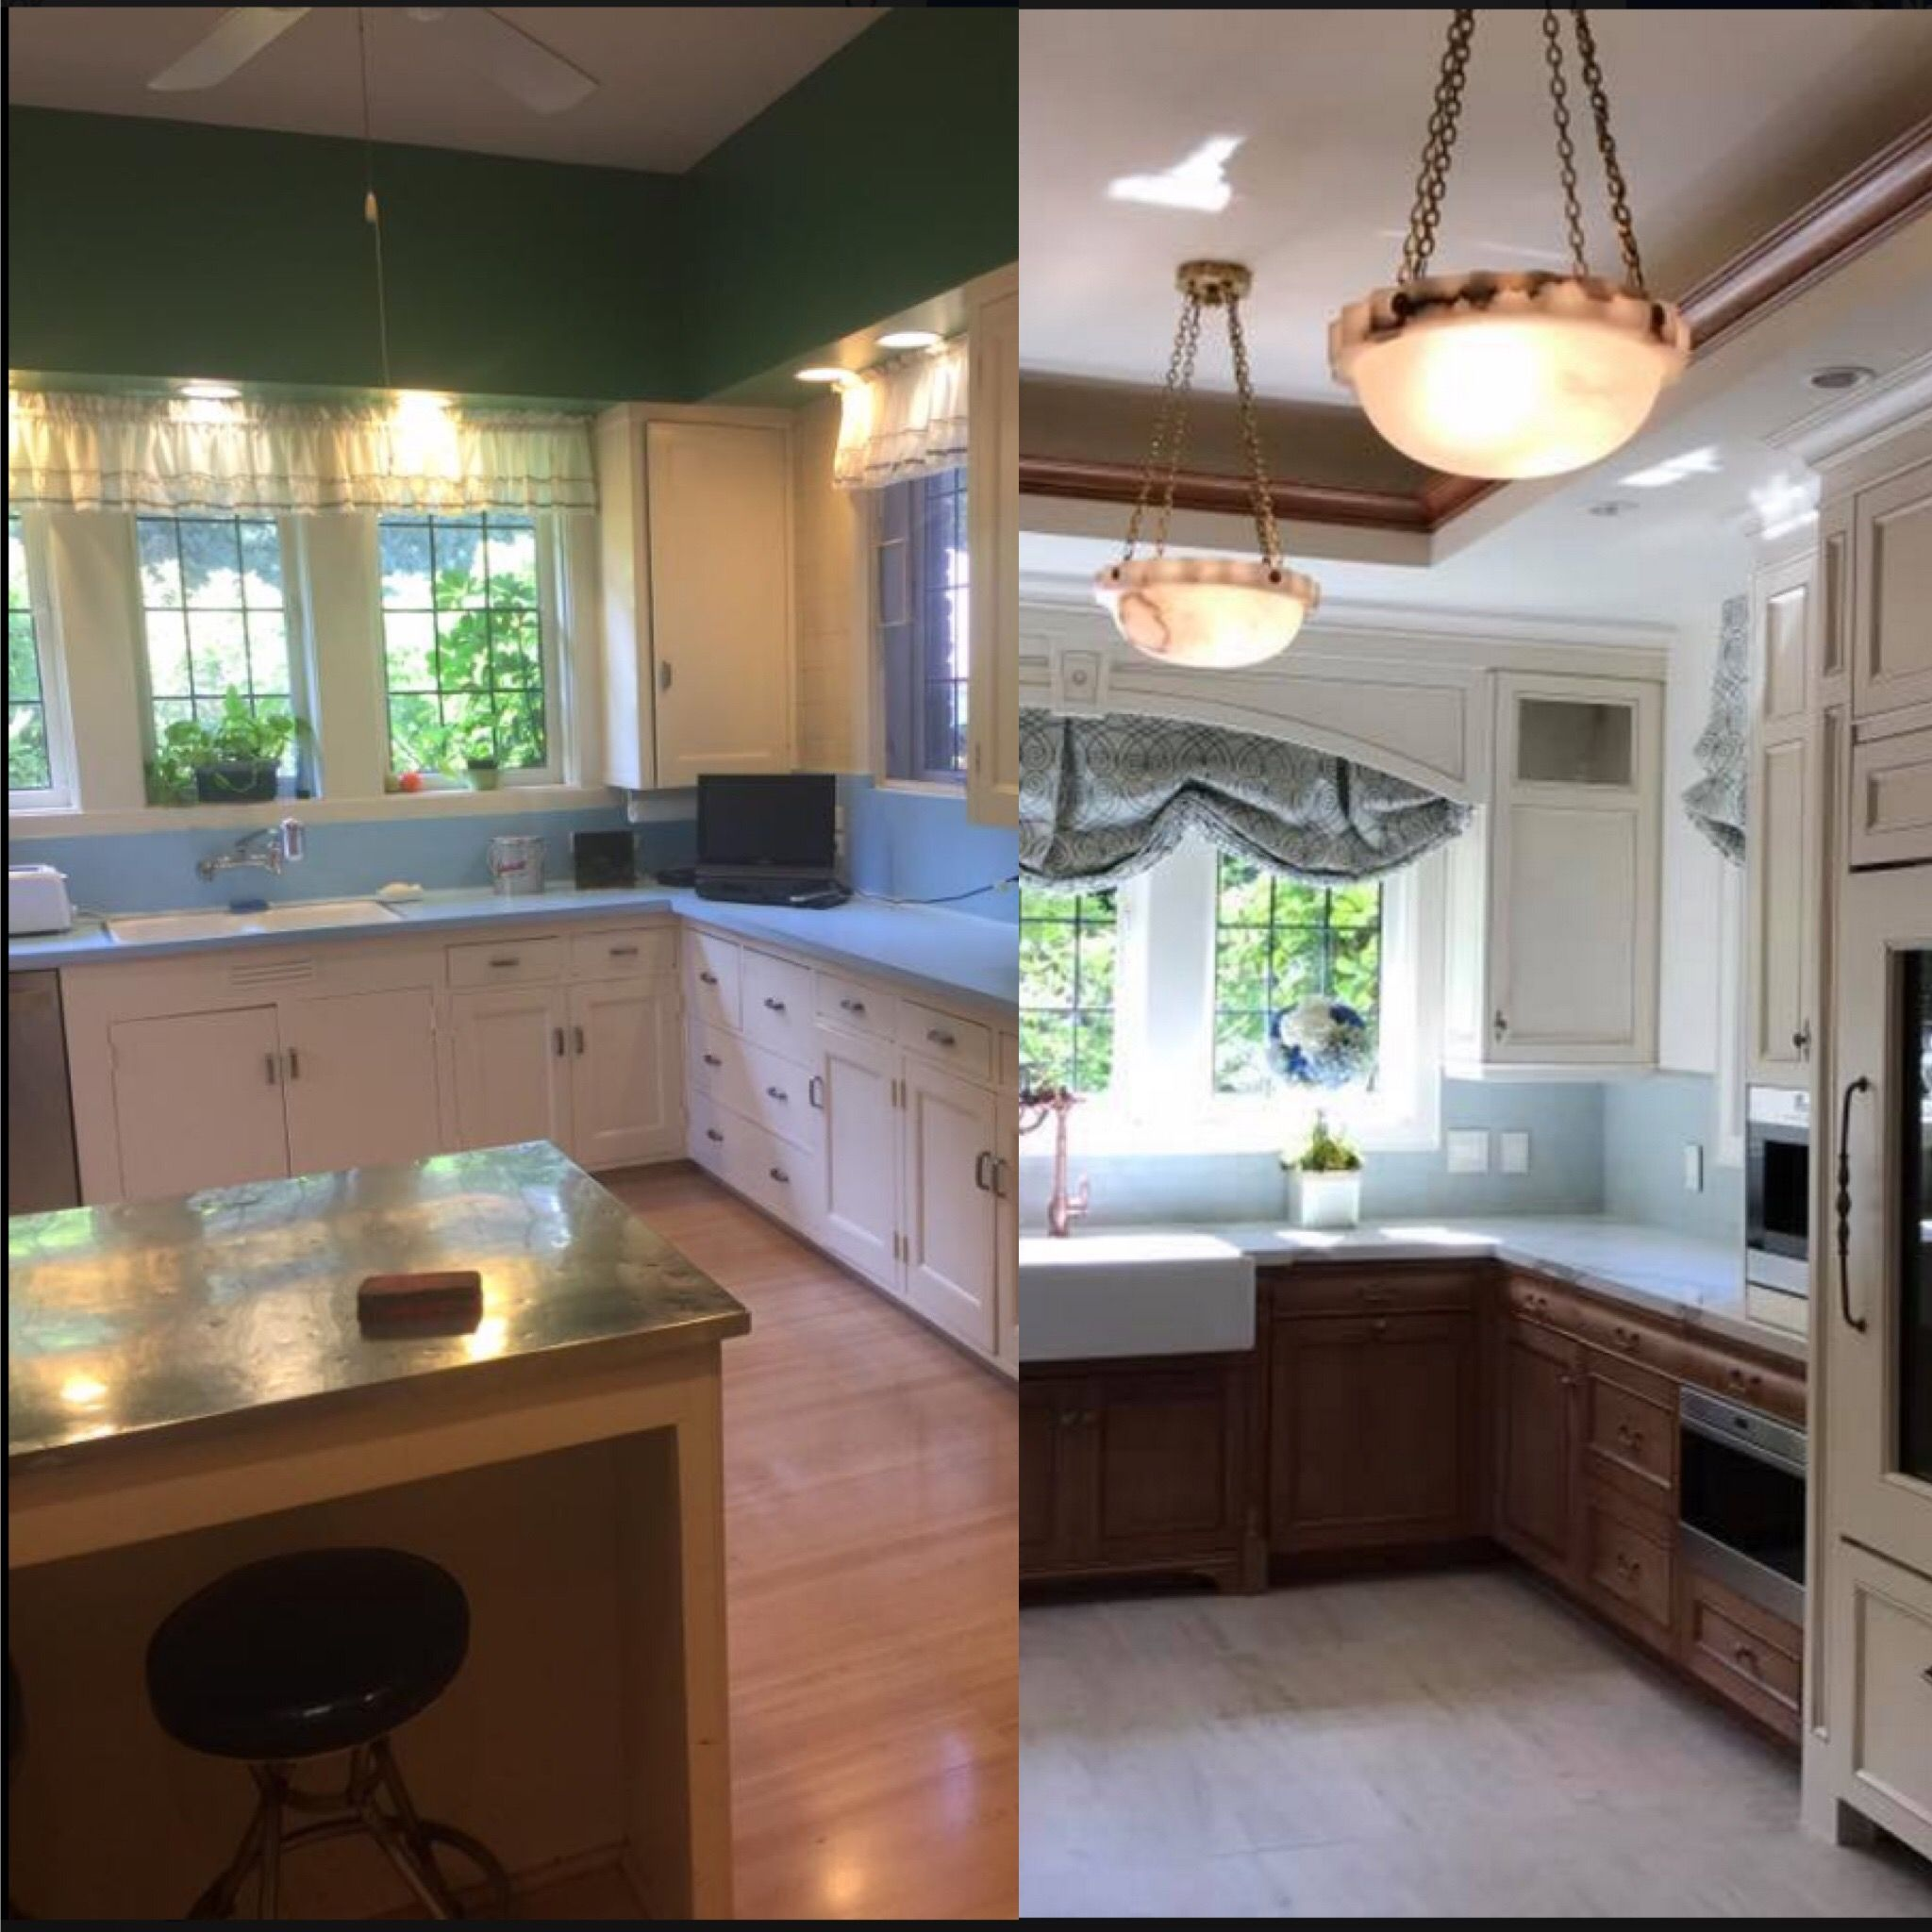 Before And After Shot Of The Kitchen From The 2017 Pasadena Showcase House Kitchen Cabinet Design Cabinetry Design Cabinet Design